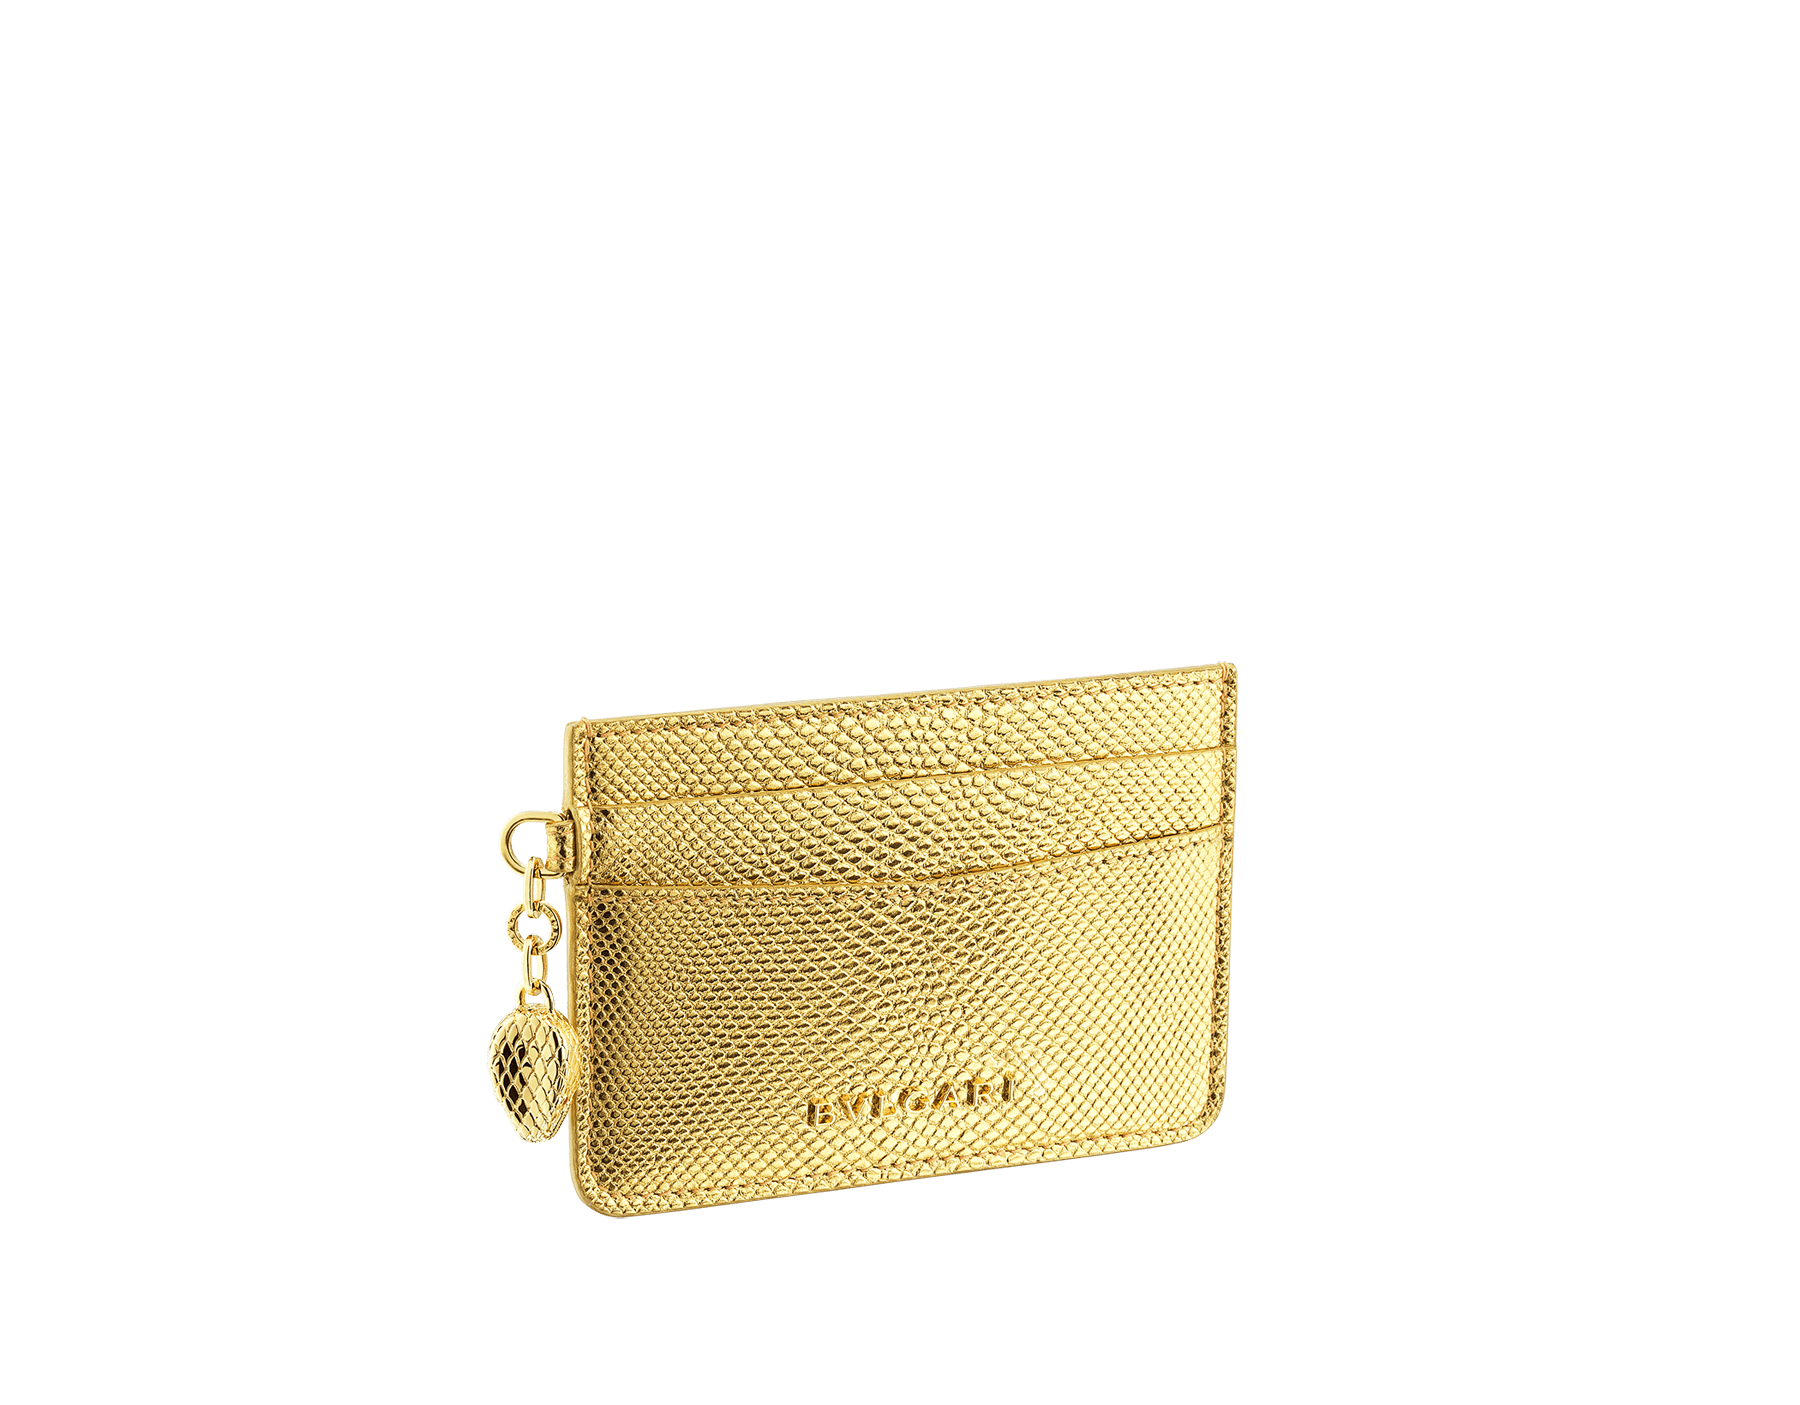 """Serpenti Forever"" card holder in ""Molten"" gold karung skin, offering a touch of radiance for the Winter Holidays. New Serpenti head charm in gold-plated brass, complete with ruby-red enamel eyes. 290504 image 1"